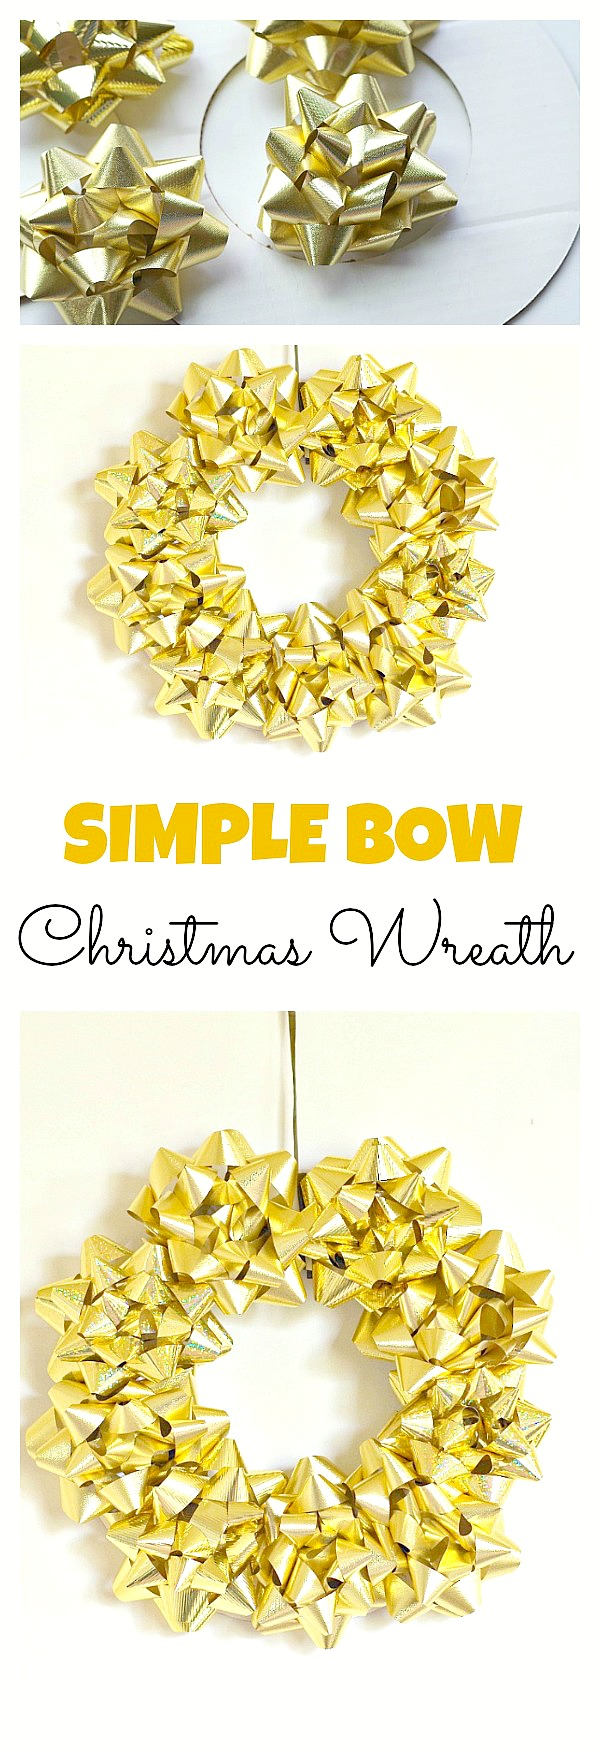 Simple Bow Christmas Wreath